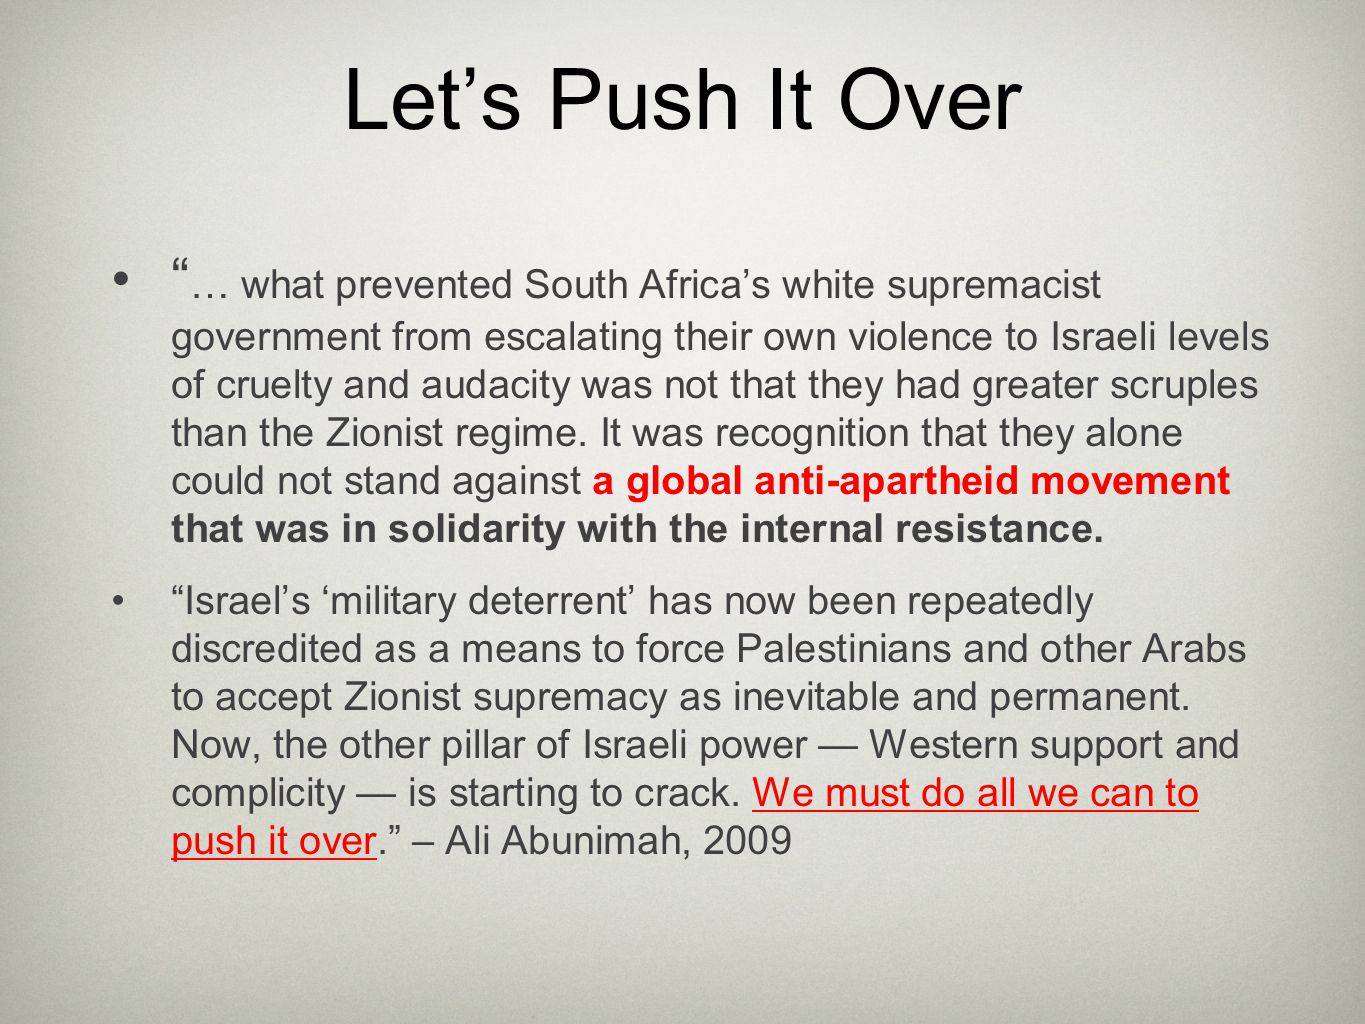 Let's Push It Over … what prevented South Africa's white supremacist government from escalating their own violence to Israeli levels of cruelty and audacity was not that they had greater scruples than the Zionist regime.